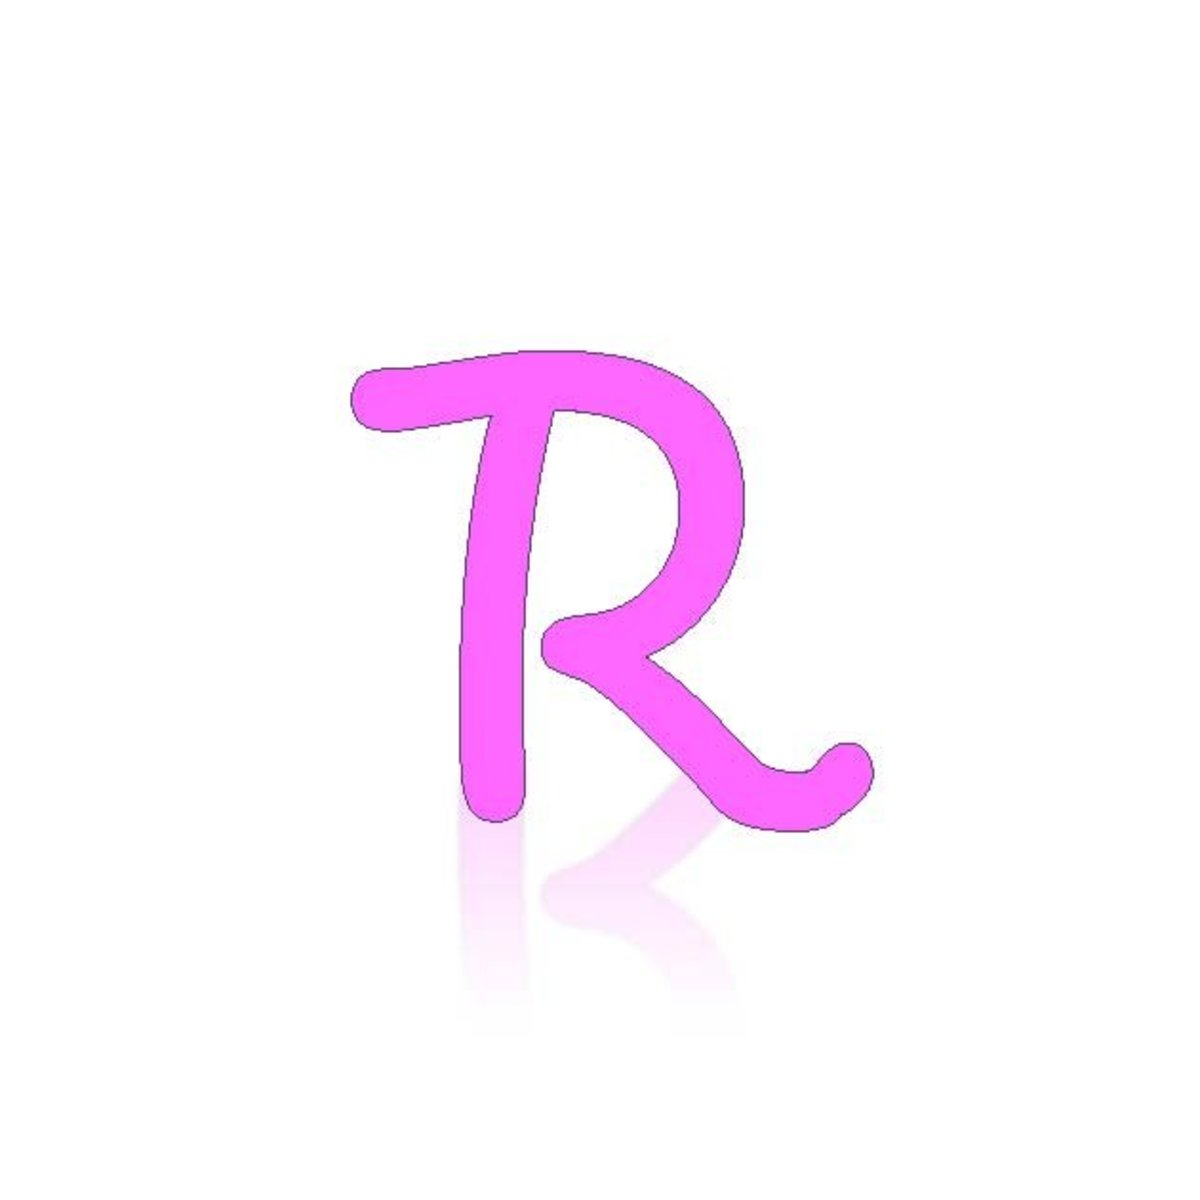 Acrostic Name Poems for Girls Names Starting with R